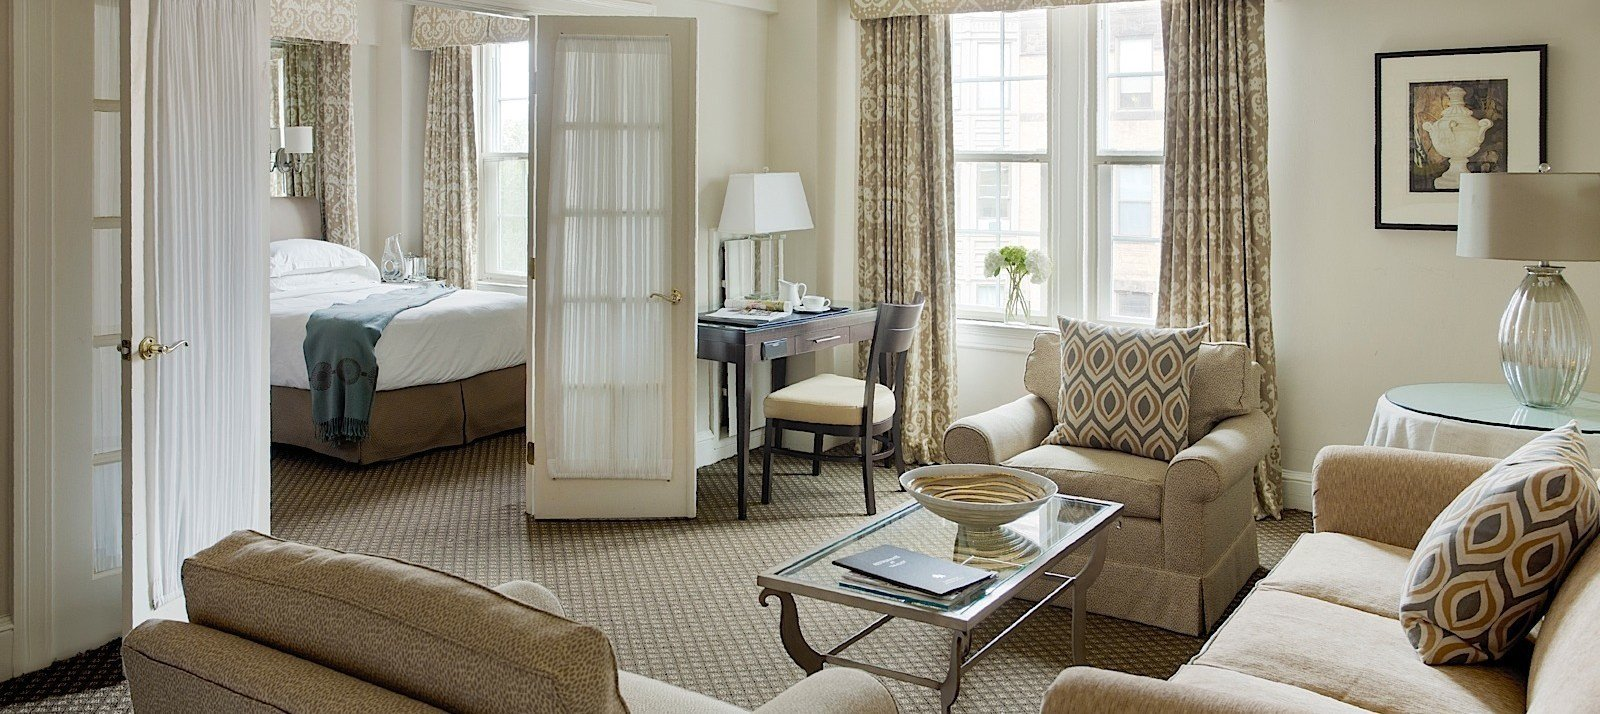 Best The Eliot Hotel Hotels In Back Bay Boston Ma With Pictures